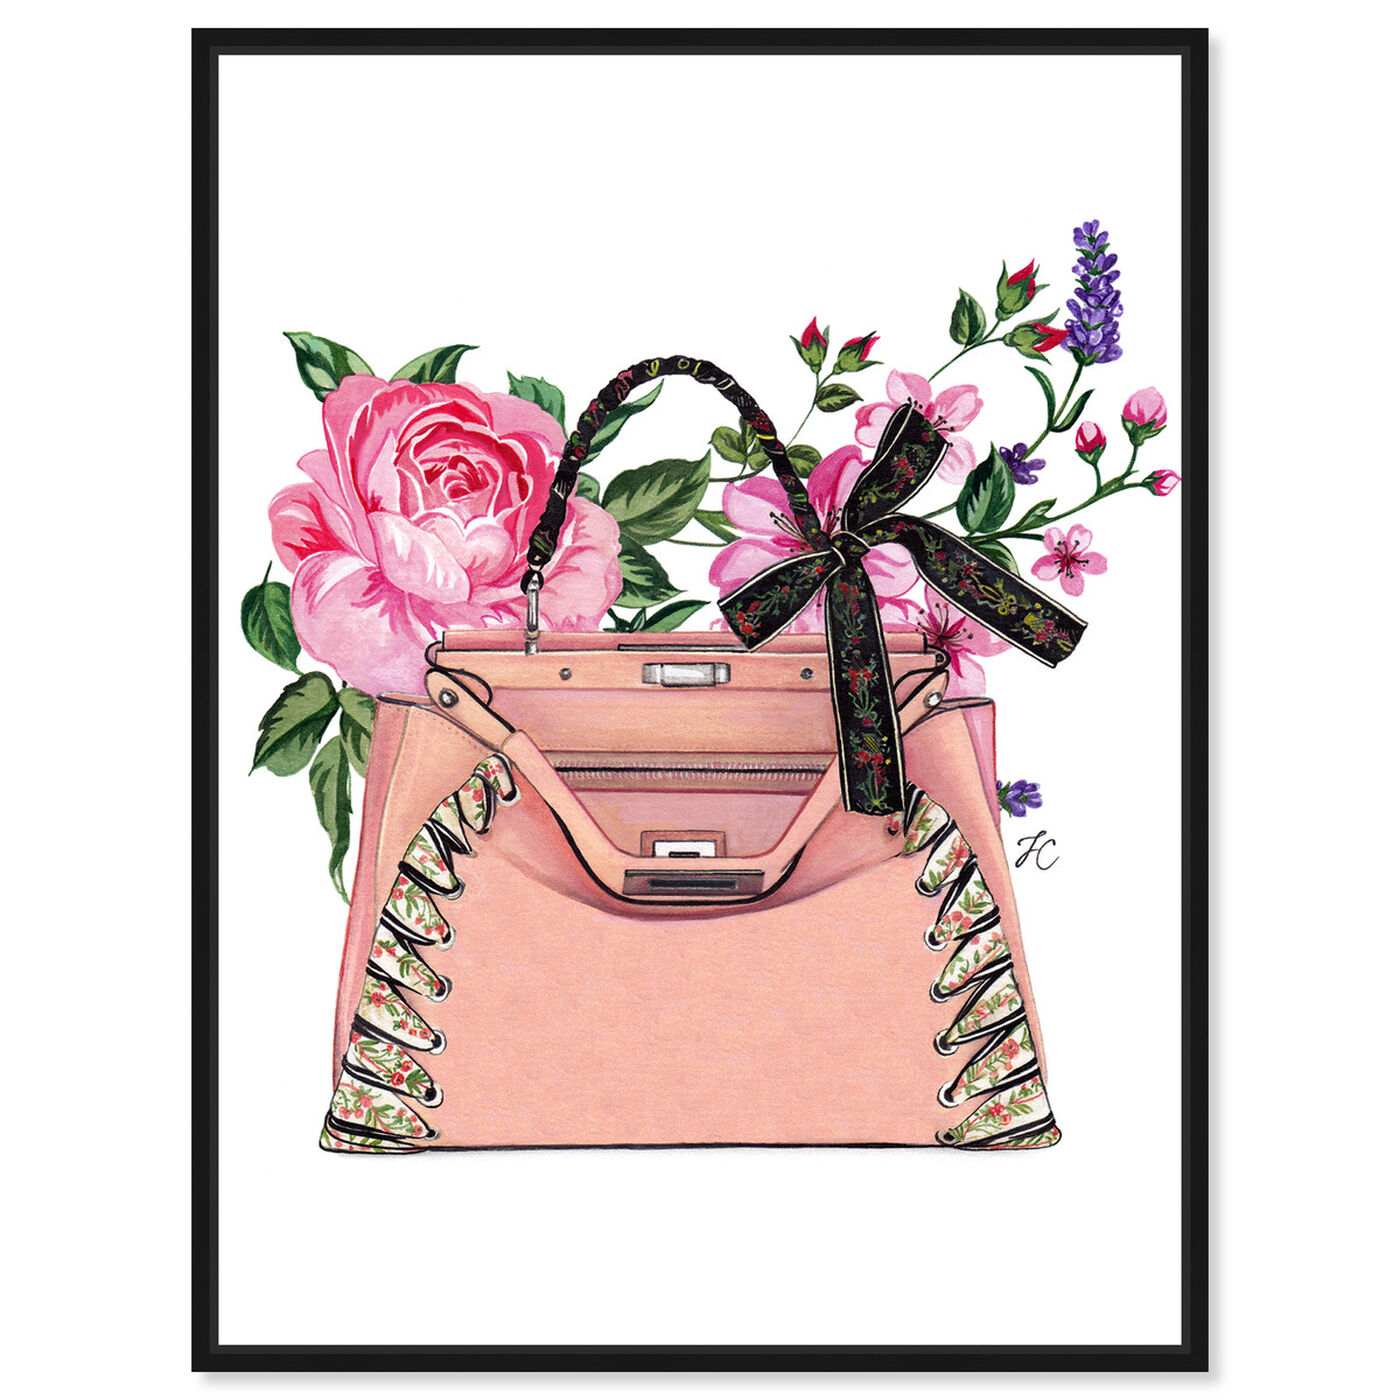 Front view of Doll Memories - Pink roses featuring fashion and glam and handbags art.